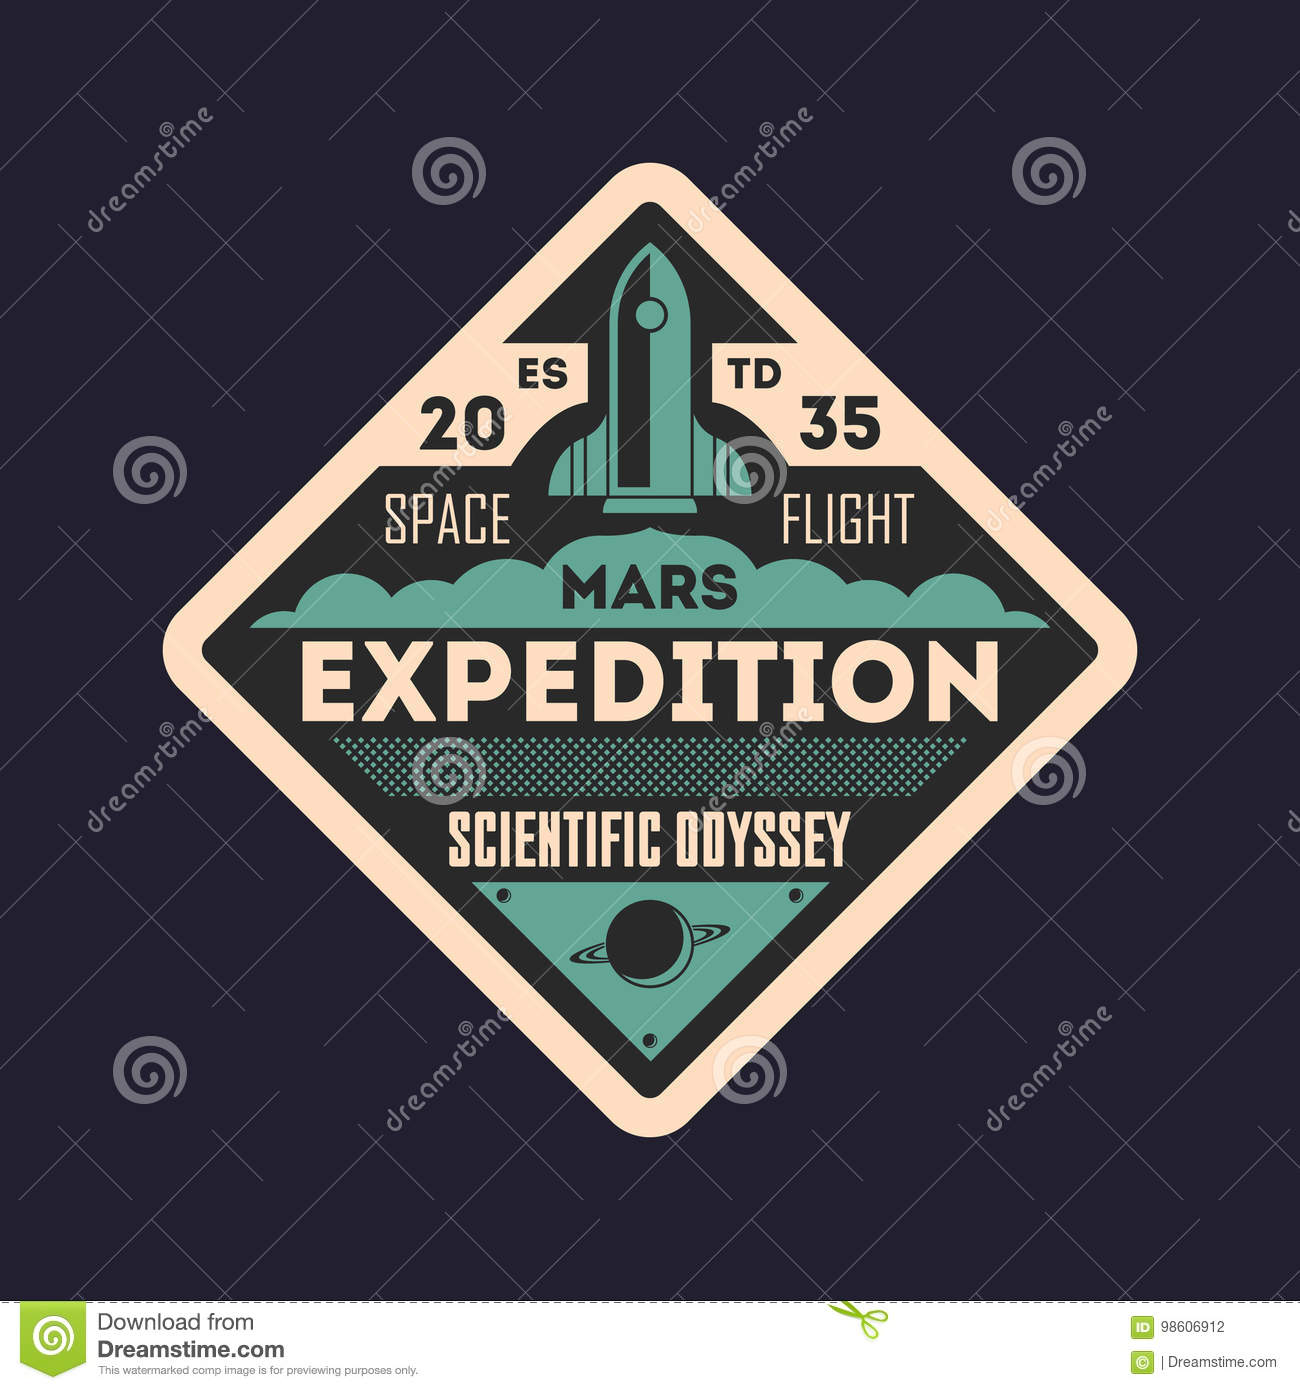 Martian scientific odyssey vintage isolated label stock vector martian scientific odyssey vintage isolated label biocorpaavc Choice Image